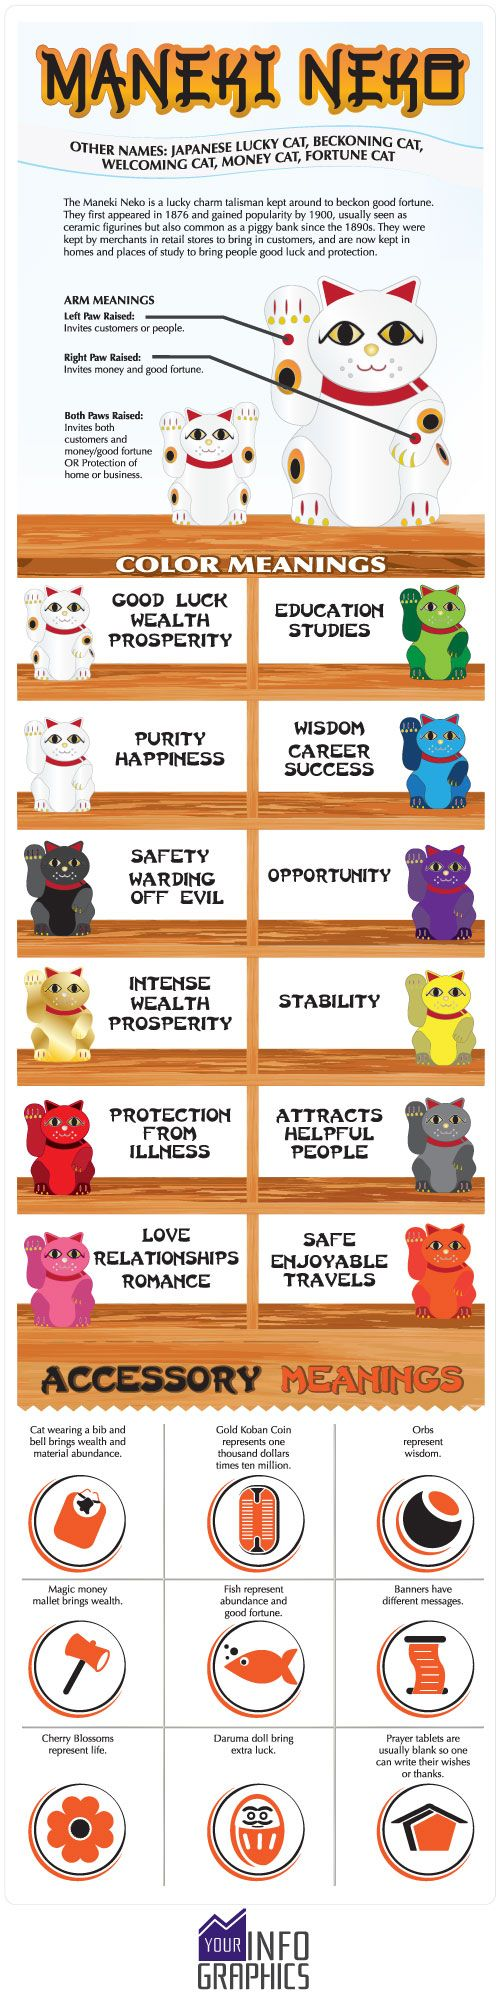 This infographic of Maneki Neko, Lucky Cat, shows the meanings of the lucky cat colors and accessories (or symbols). This infographic also shows the lucky cat arm meanings.